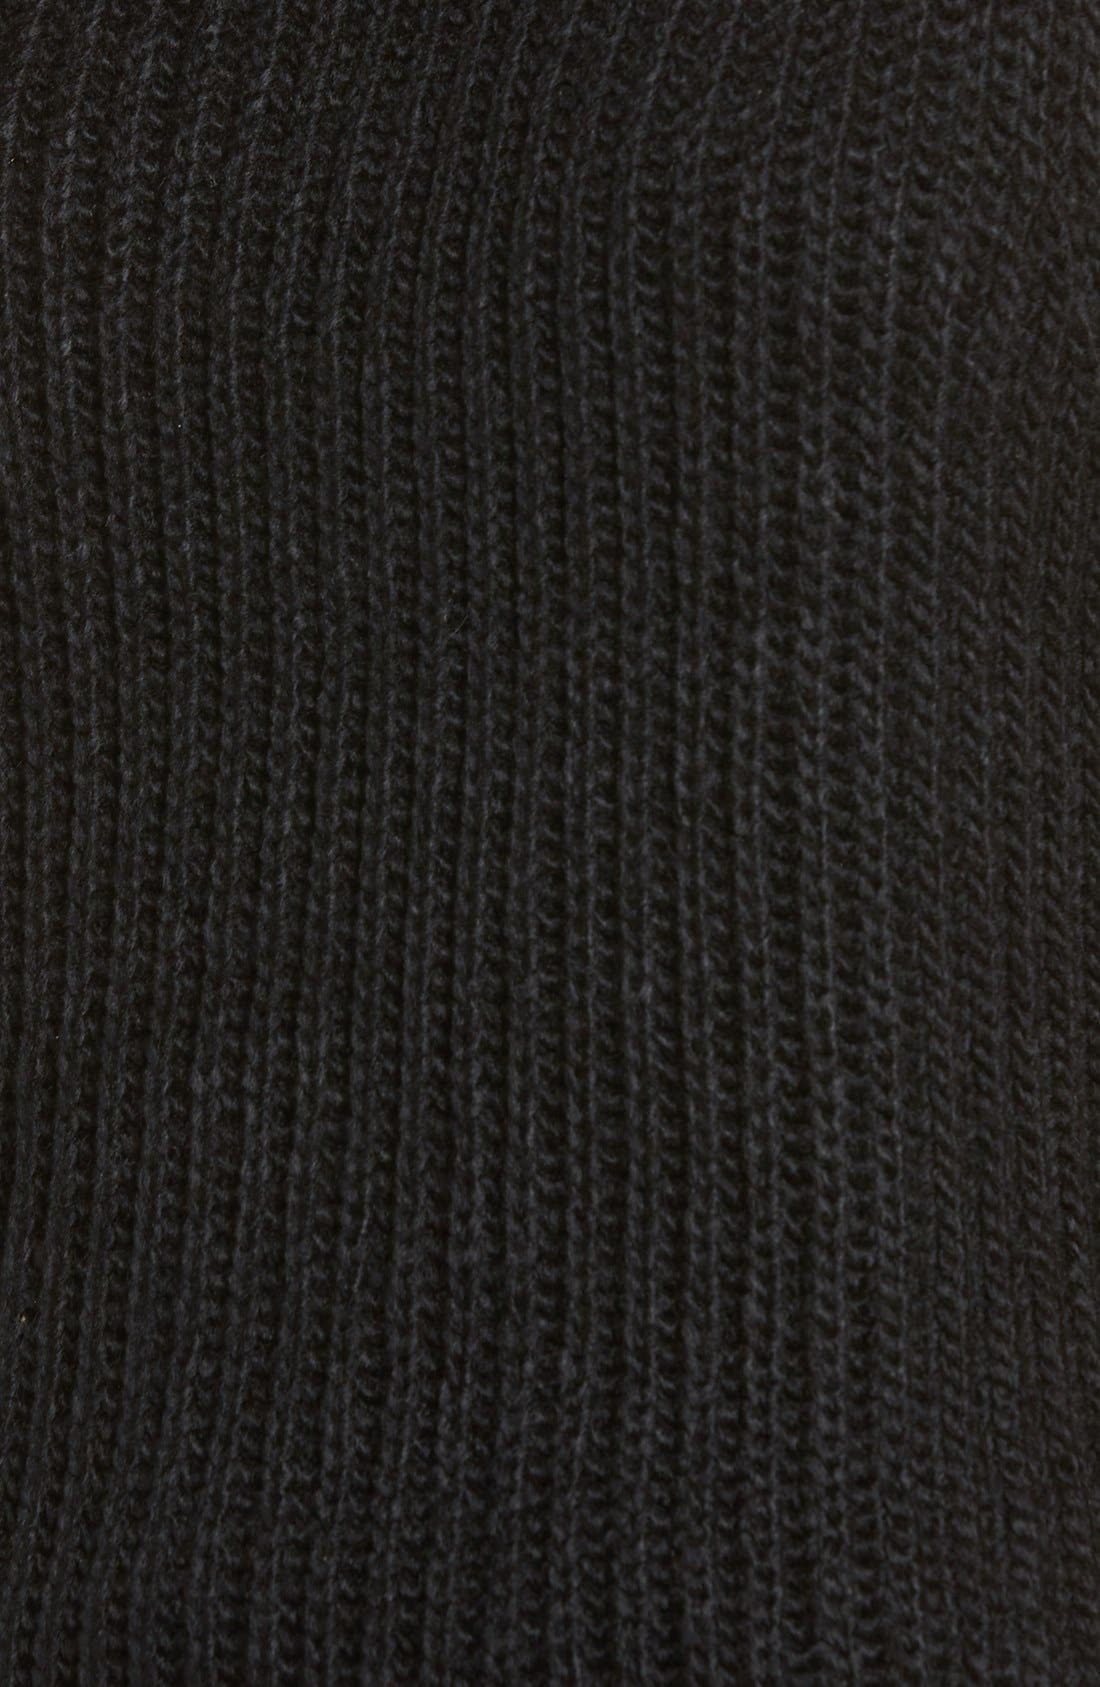 ASTR High/Low Turtleneck Sweater,                             Alternate thumbnail 2, color,                             001